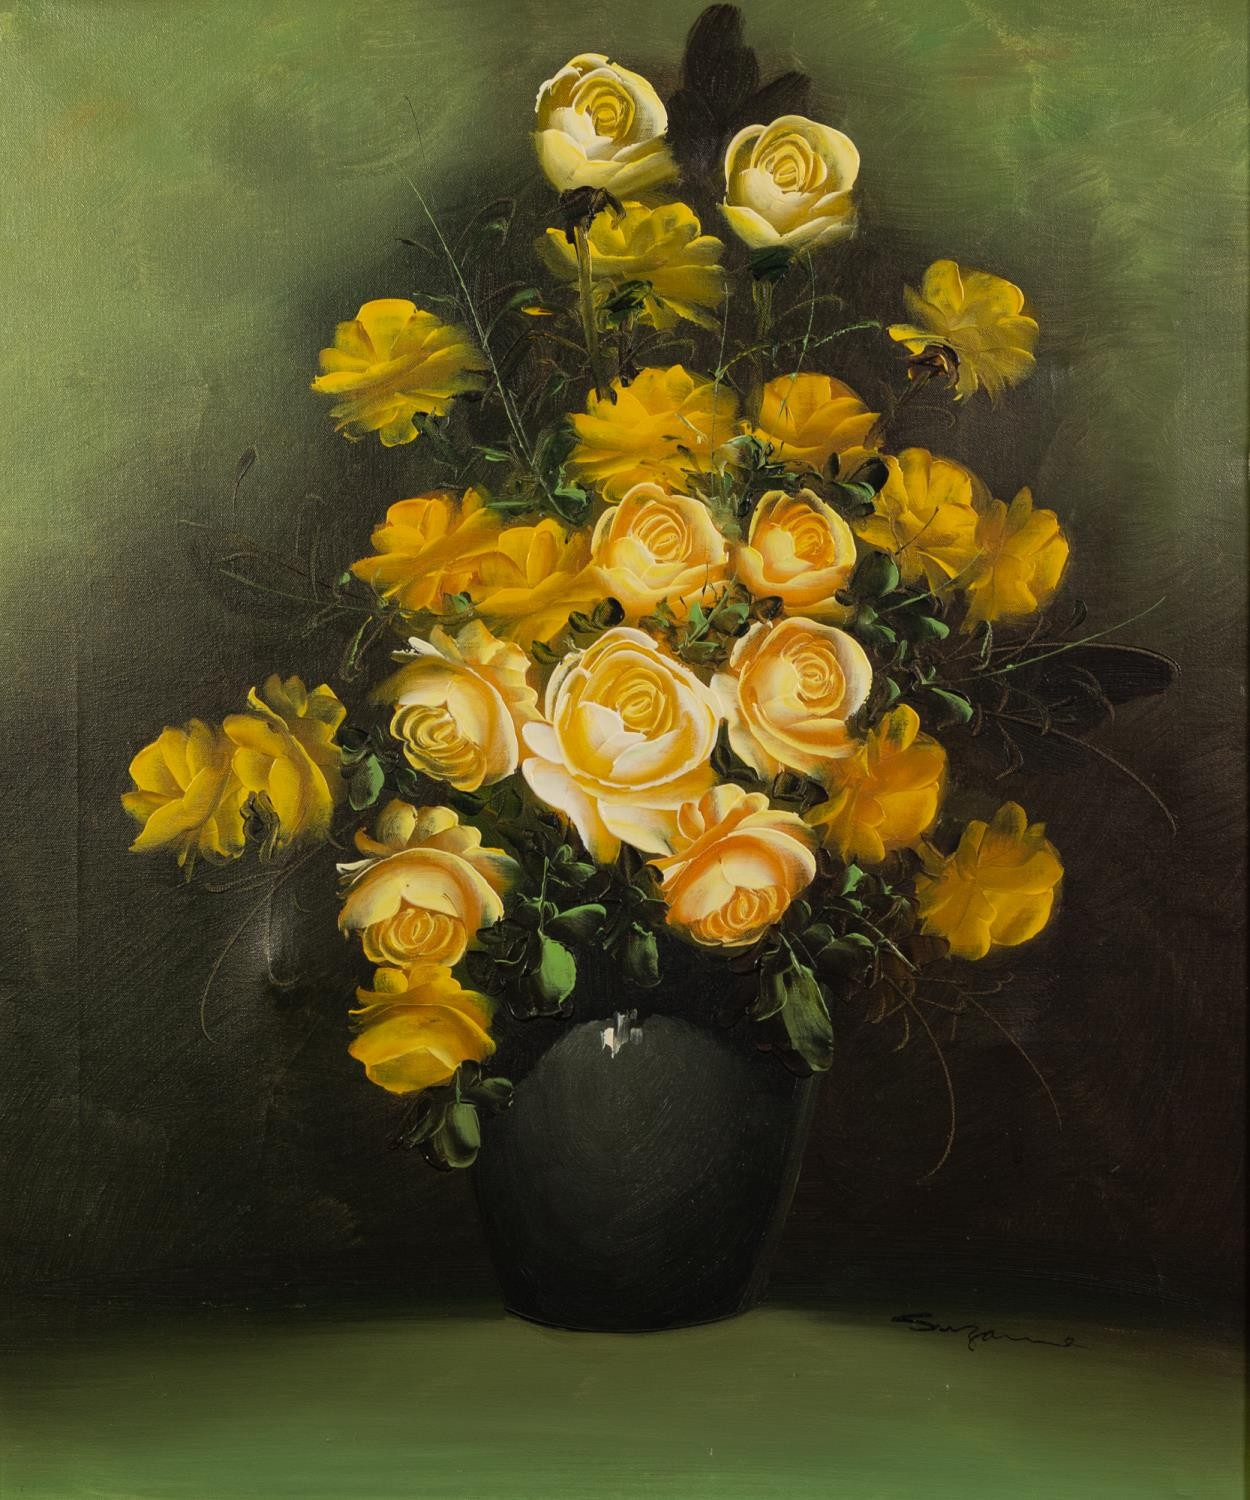 SUZANNE (MODERN) OIL ON CANVAS Vase of yellow roses Signed 24in x 19 1/2in (61 x 49.5cm)